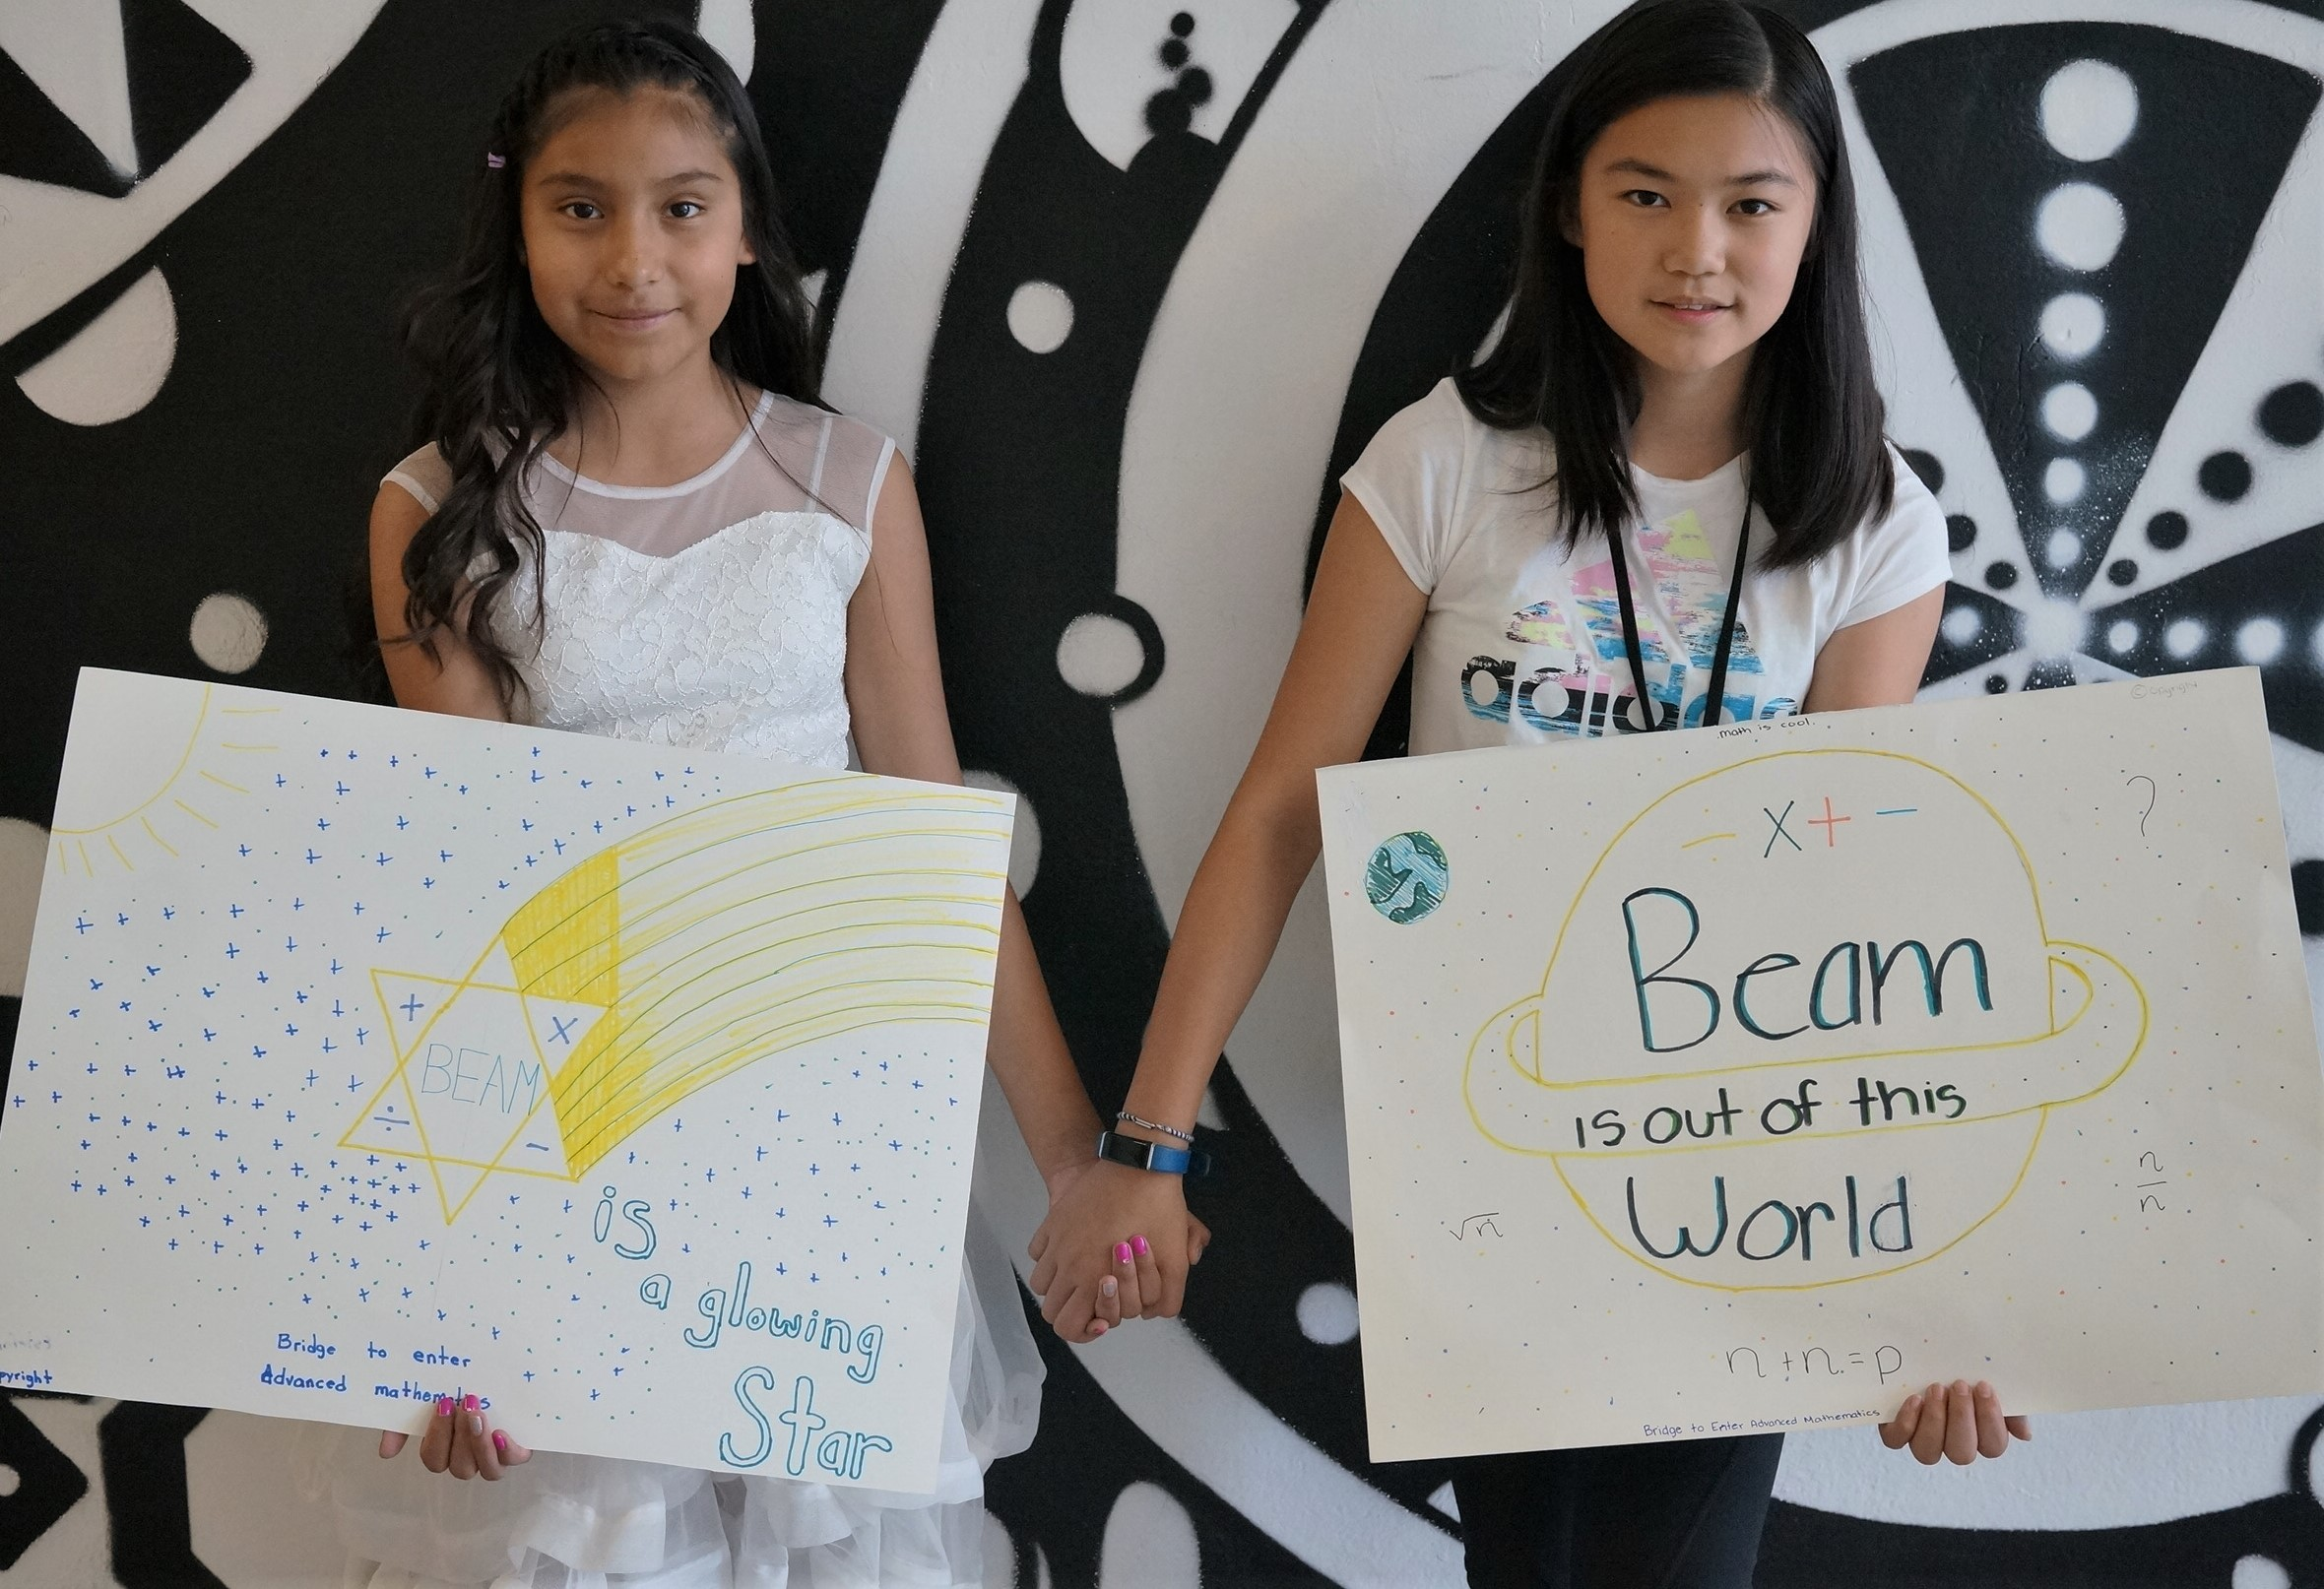 """BEAM is a glowing star."" (left) —Estefani, BEAM Discovery  ""BEAM is out of this world."" (right) —Allison, BEAM Discovery"